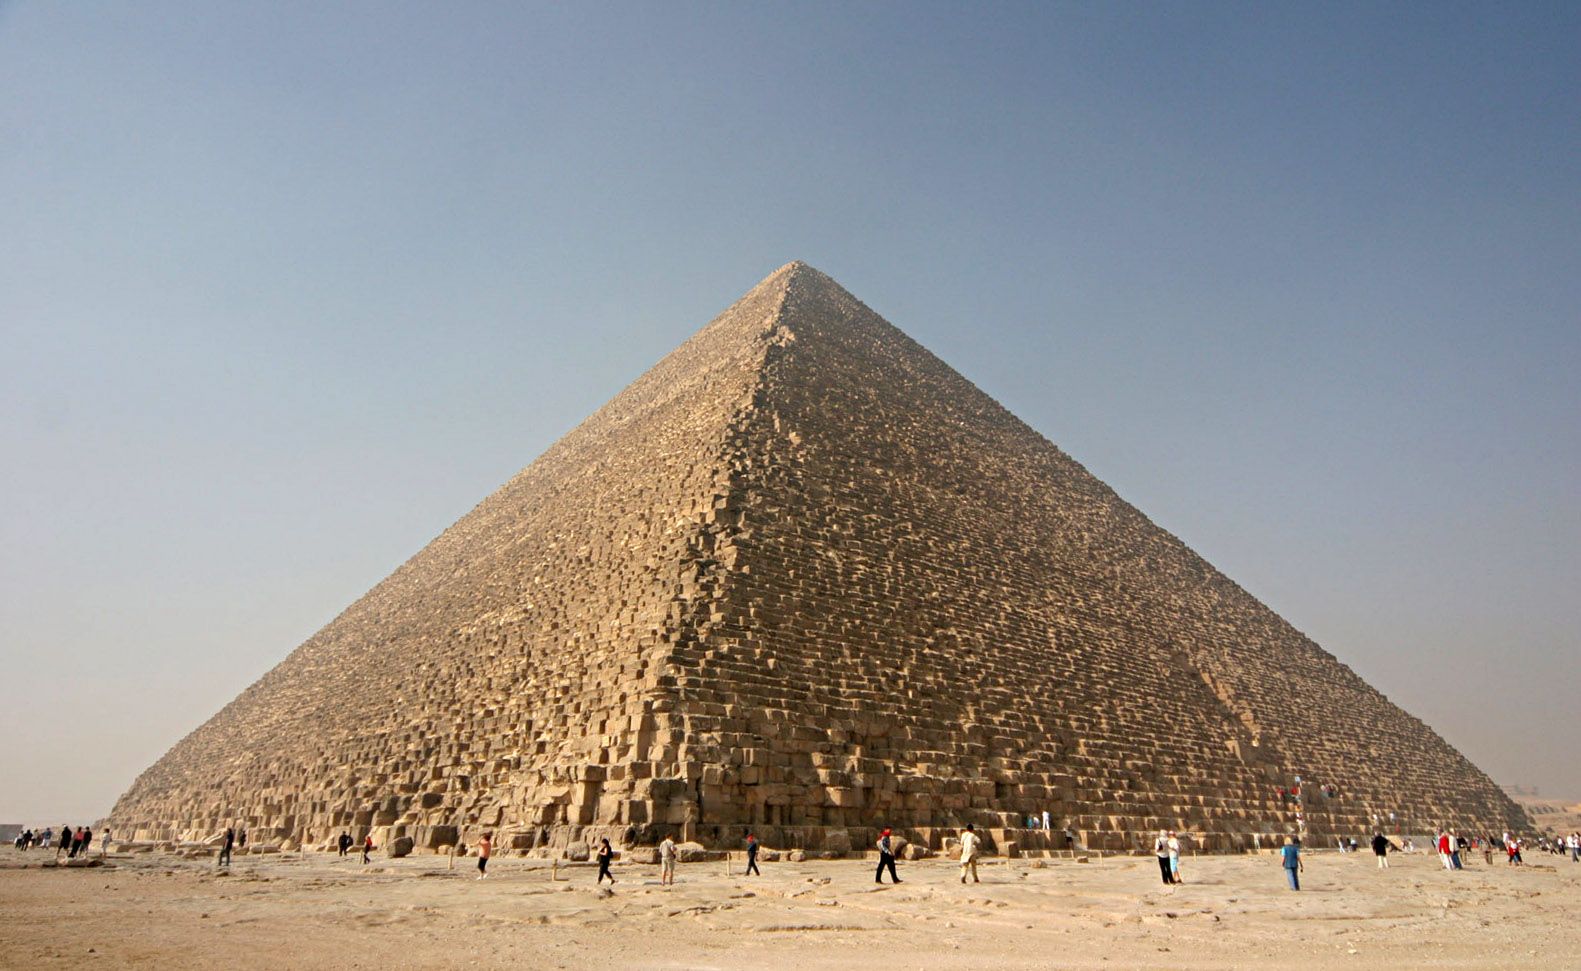 Help me with my essay about pyramid?